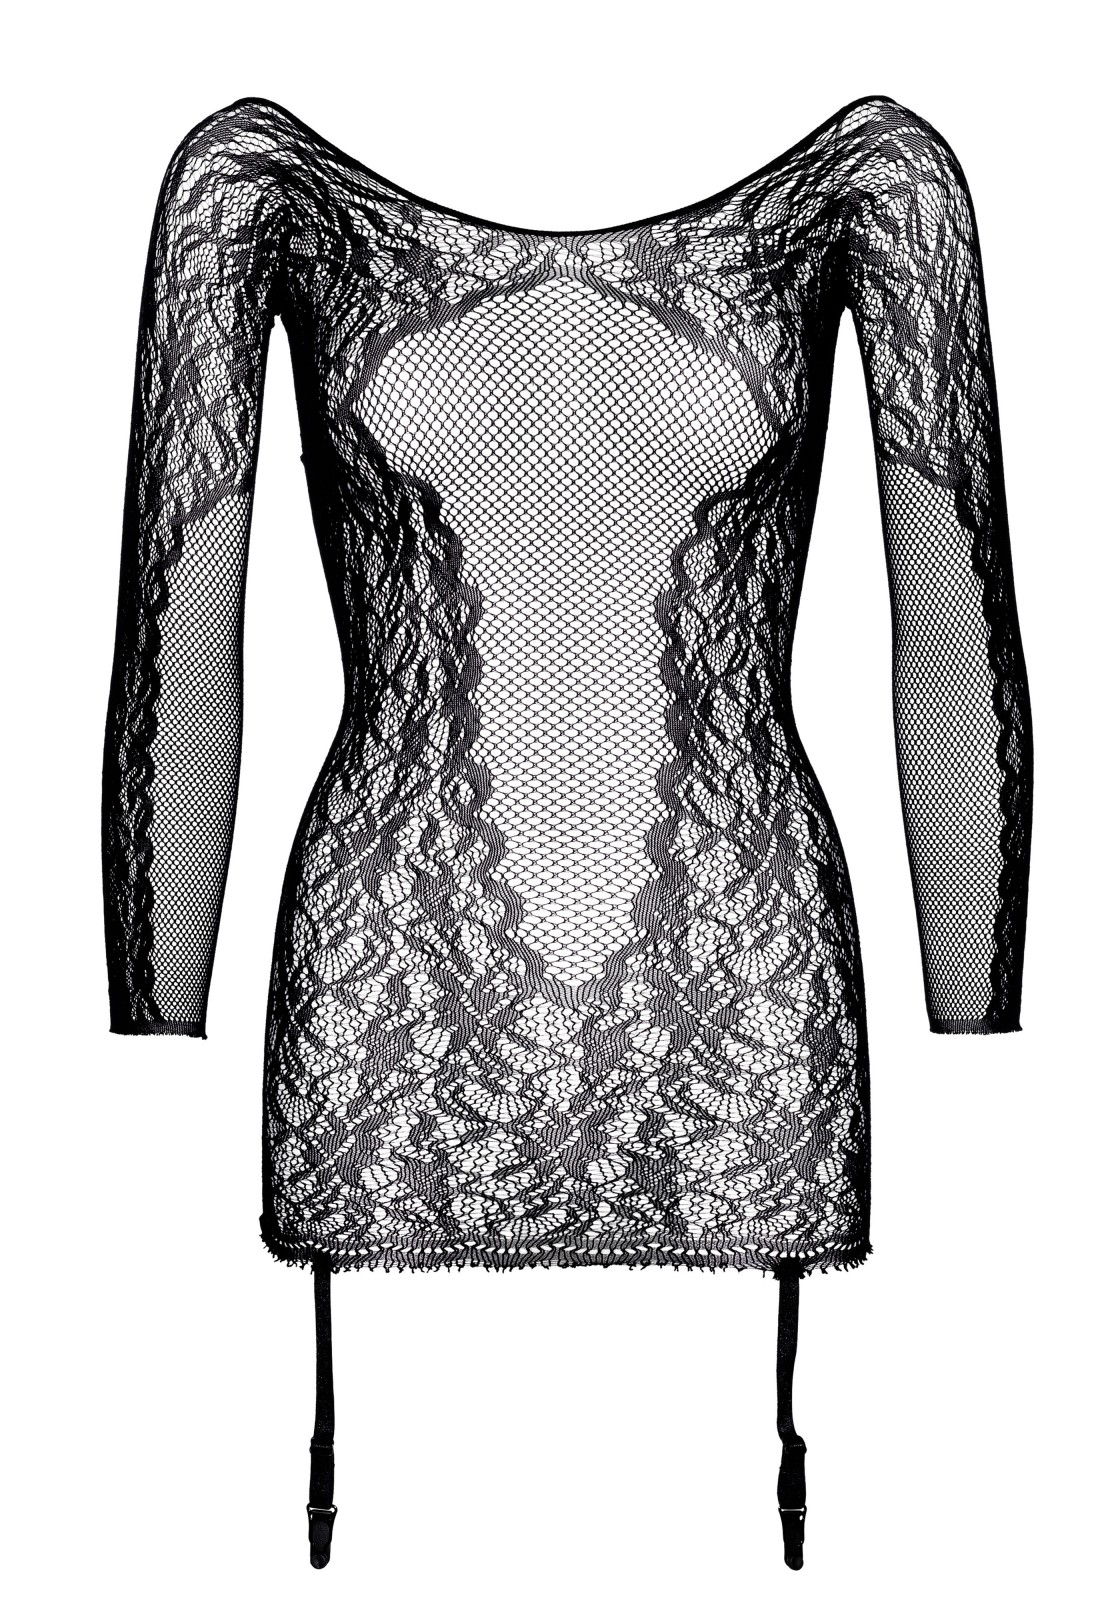 Net and lace long sleeved backless garter dress.